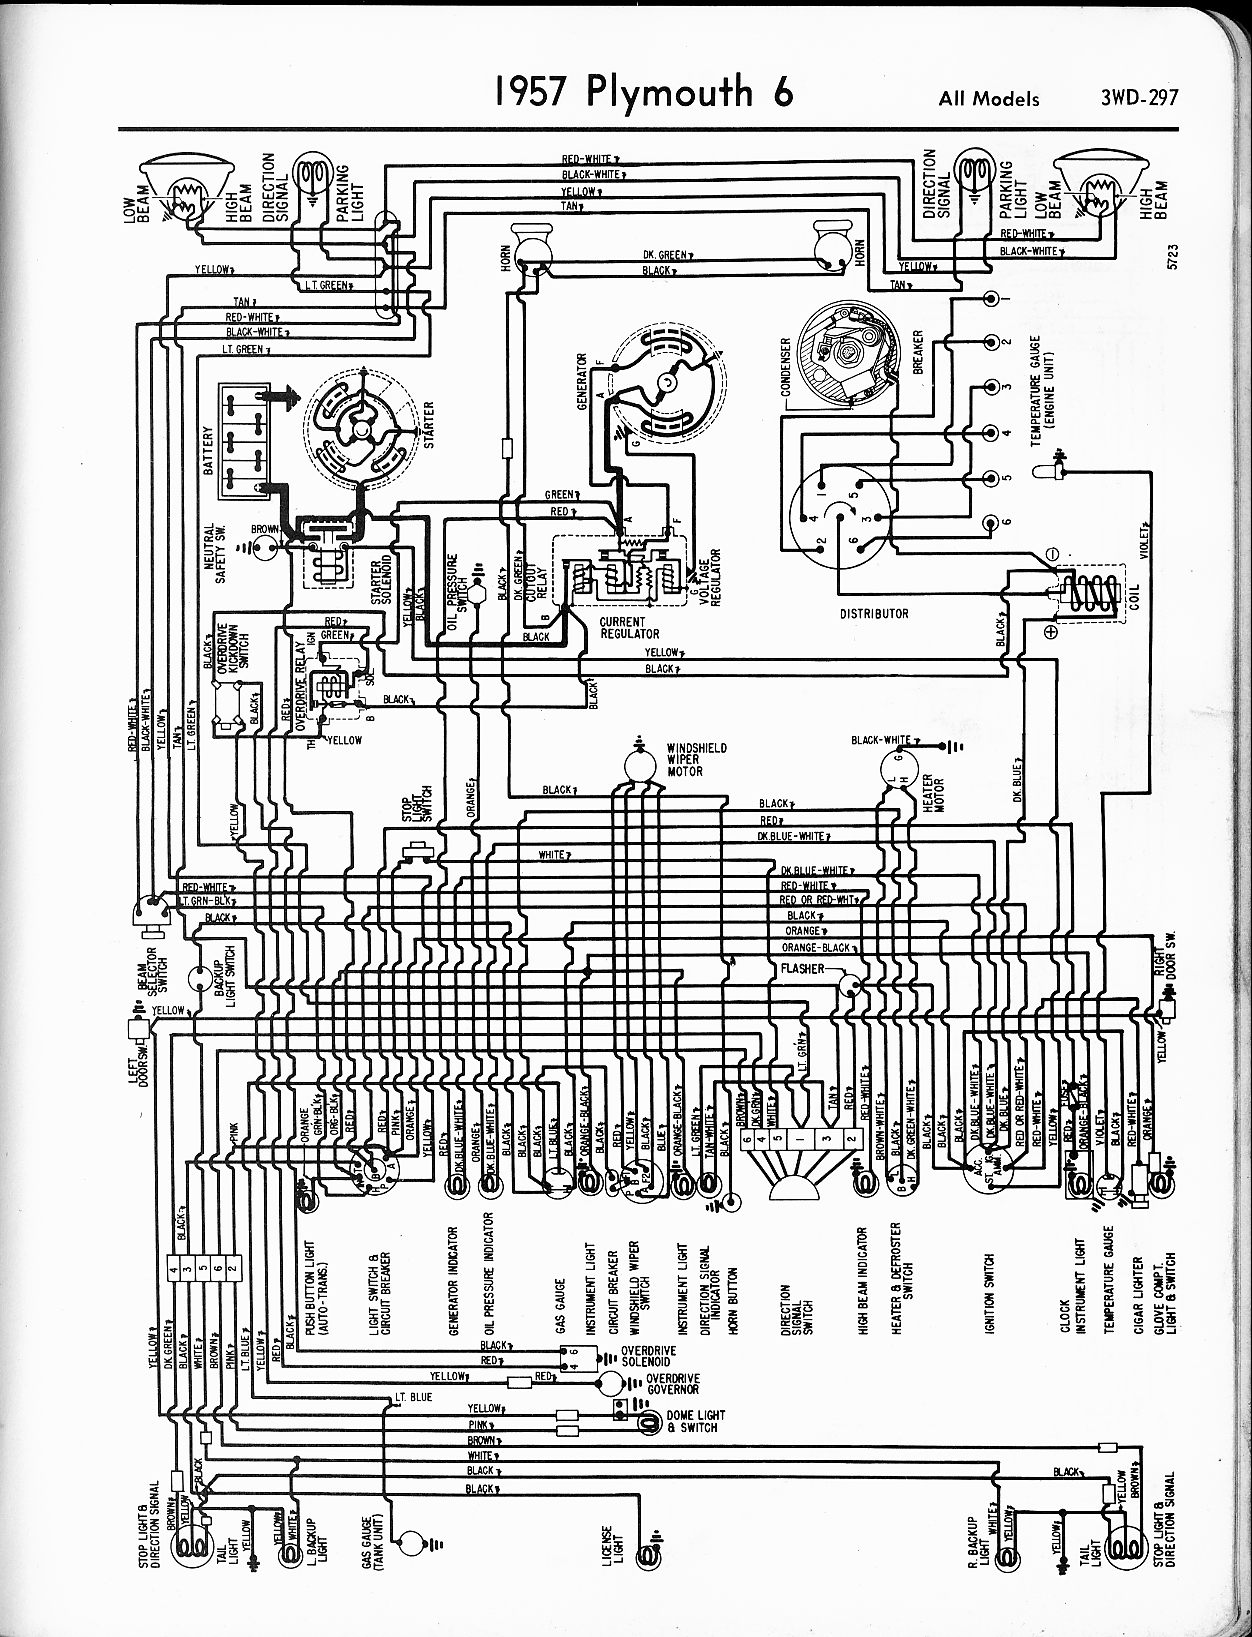 67 Mustang Alternator Wiring Diagram as well 73 Corvette Wiring Diagram Pdf in addition 1965 Dodge Coro  Wiring additionally 1969 Chevelle Tach Wiring Diagram besides 1969 Pontiac Gto Wiring Diagram. on 1968 pontiac gto dash wiring diagram